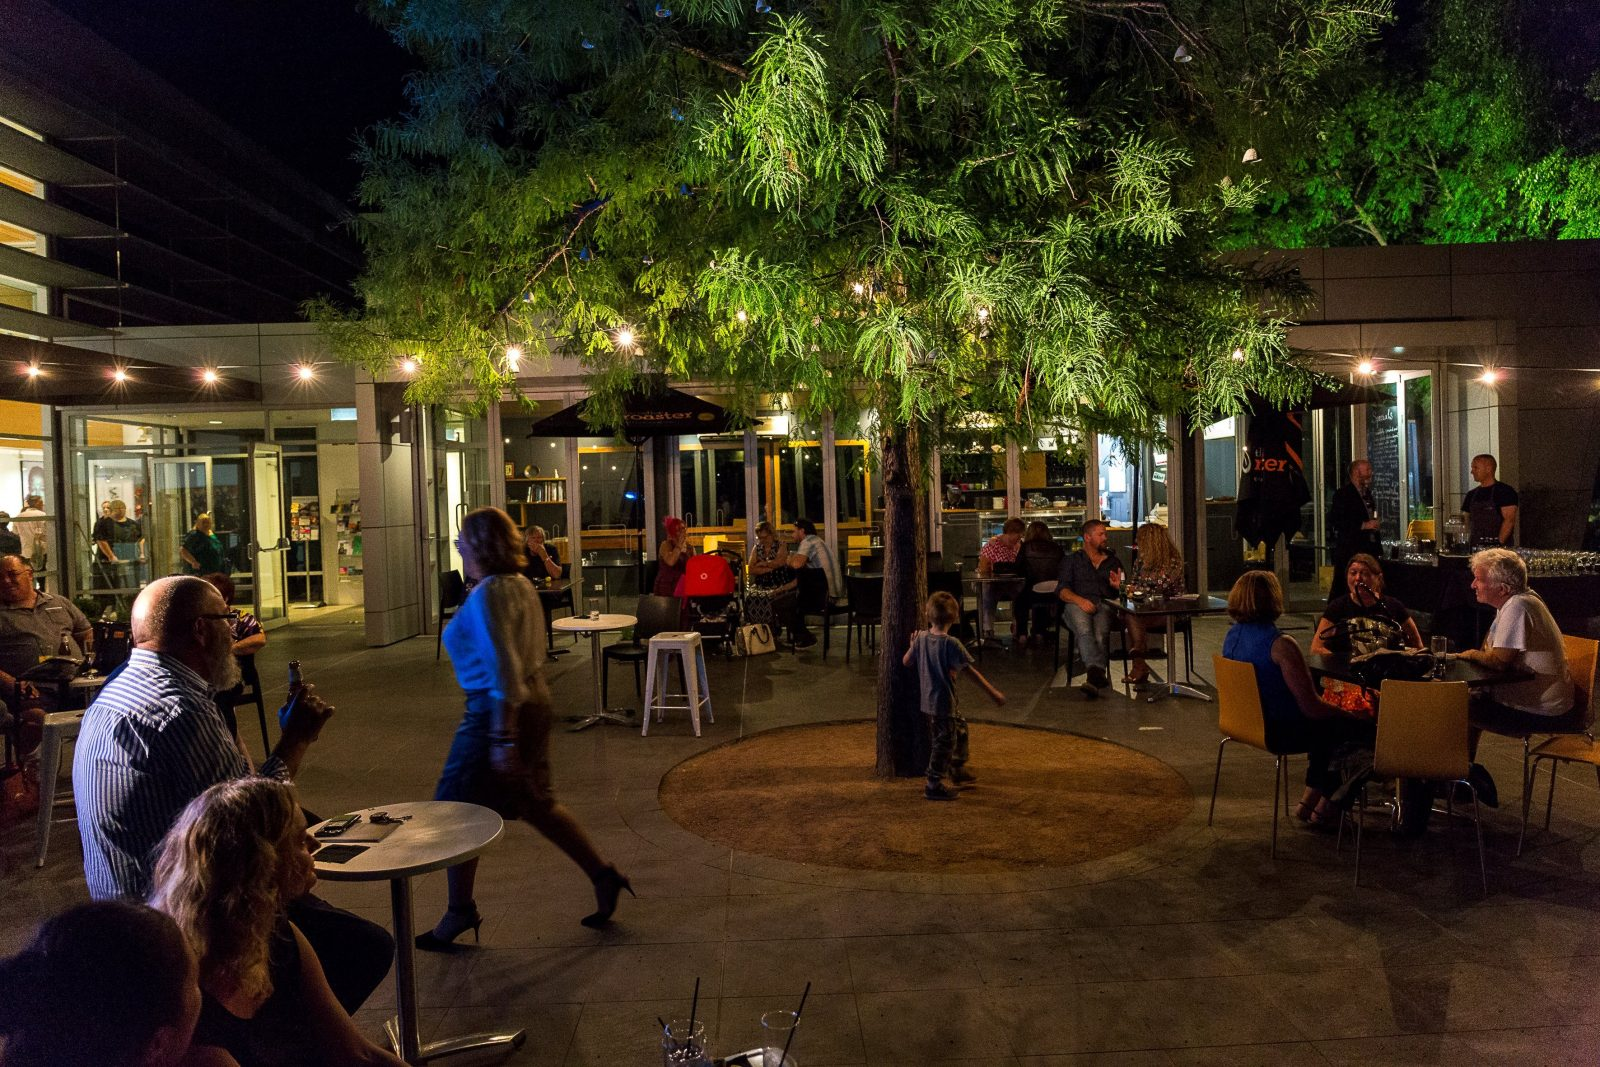 People eating and drinking in outdoor courtyard on summer evening